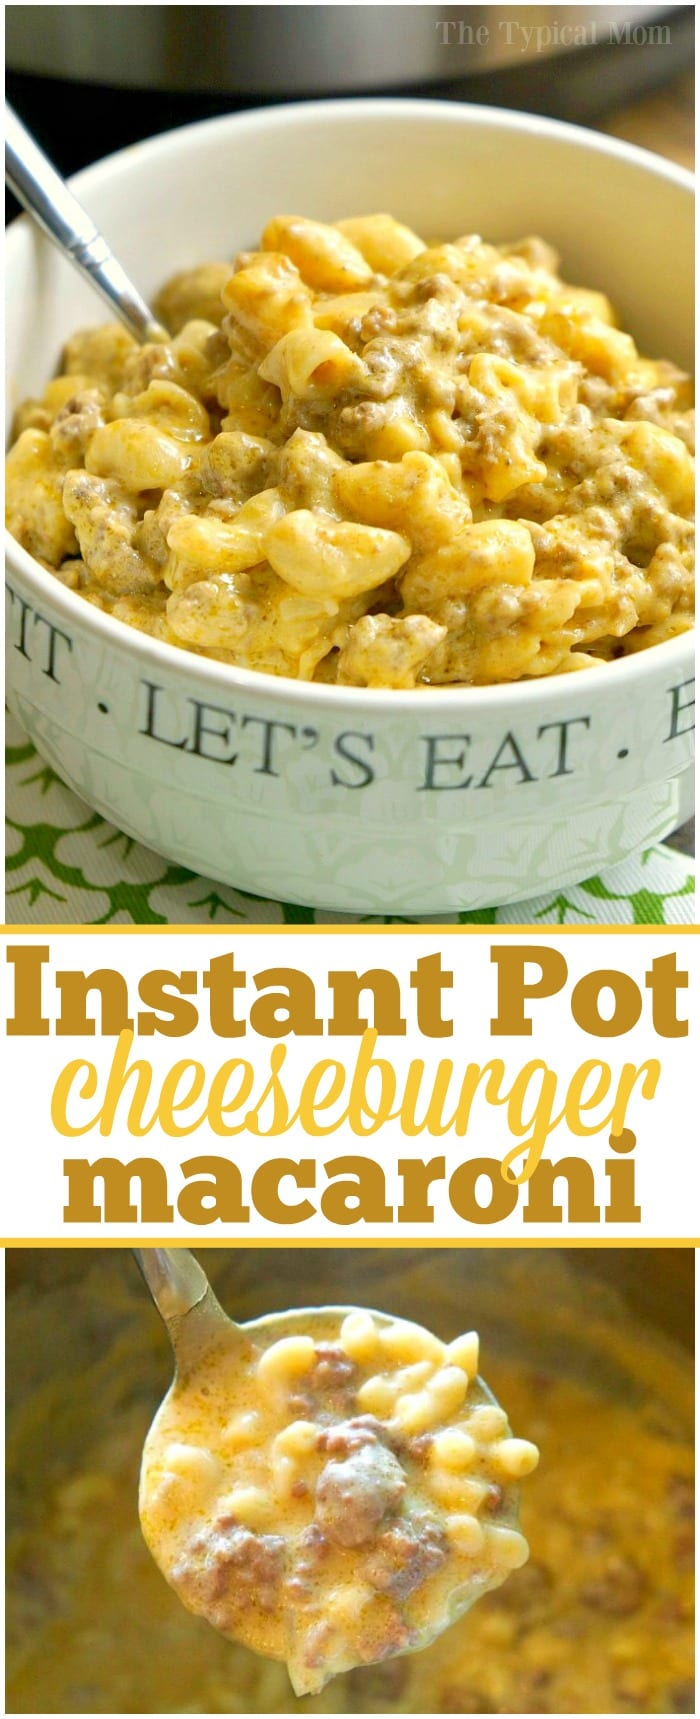 This Instant Pot cheeseburger macaroni recipe will take you back to your childhood! Just 10 minutes in your pressure cooker makes this cheesy goulash hamburger helper style pasta dinner that your whole family will love. It's one of our favorite Instant Pot ground beef recipes. #instantpot #pressurecooker #cheeseburger #macaroni #goulash #hamburgerhelper #groundbeef #recipe #macaroni #cheese